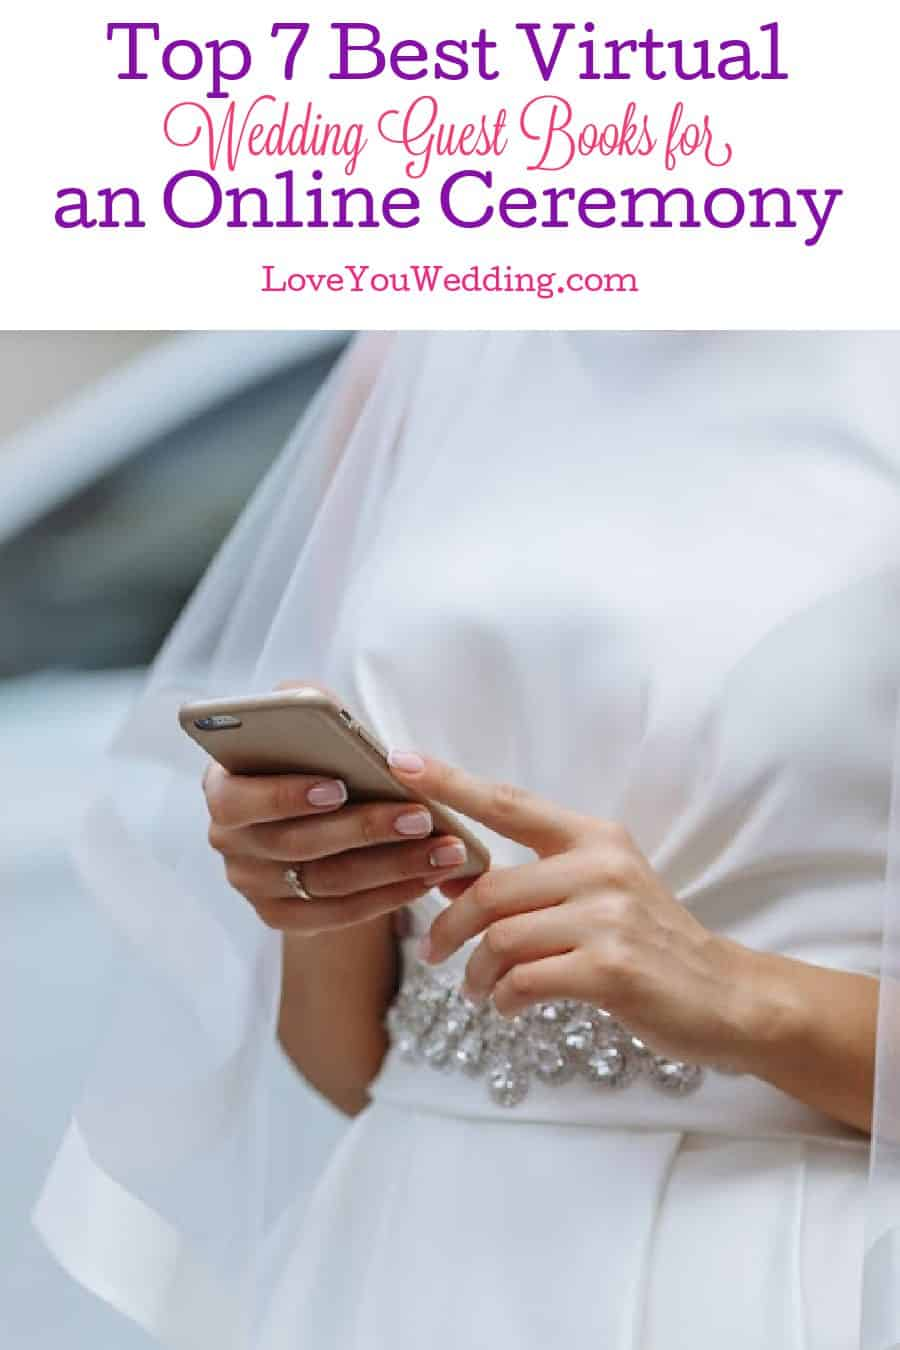 Looking for the best virtual wedding guest books? We've got you covered! Check out the top 7 options with the most diverse features!